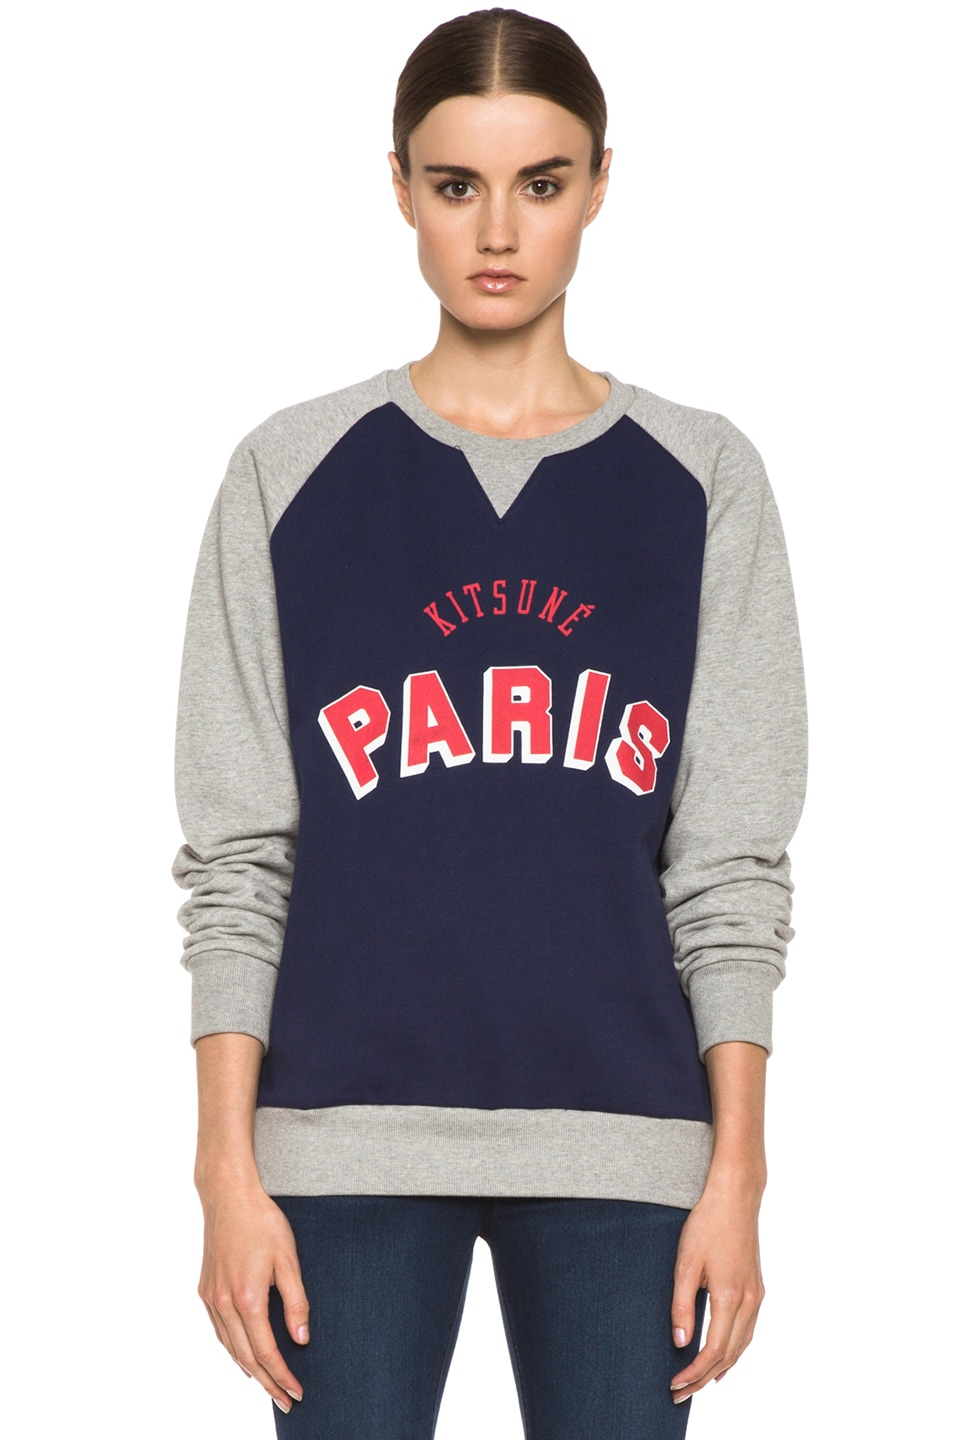 Image 1 of Kitsune Tee Kitsune Paris Cotton Sweater Melange in Navy & Grey